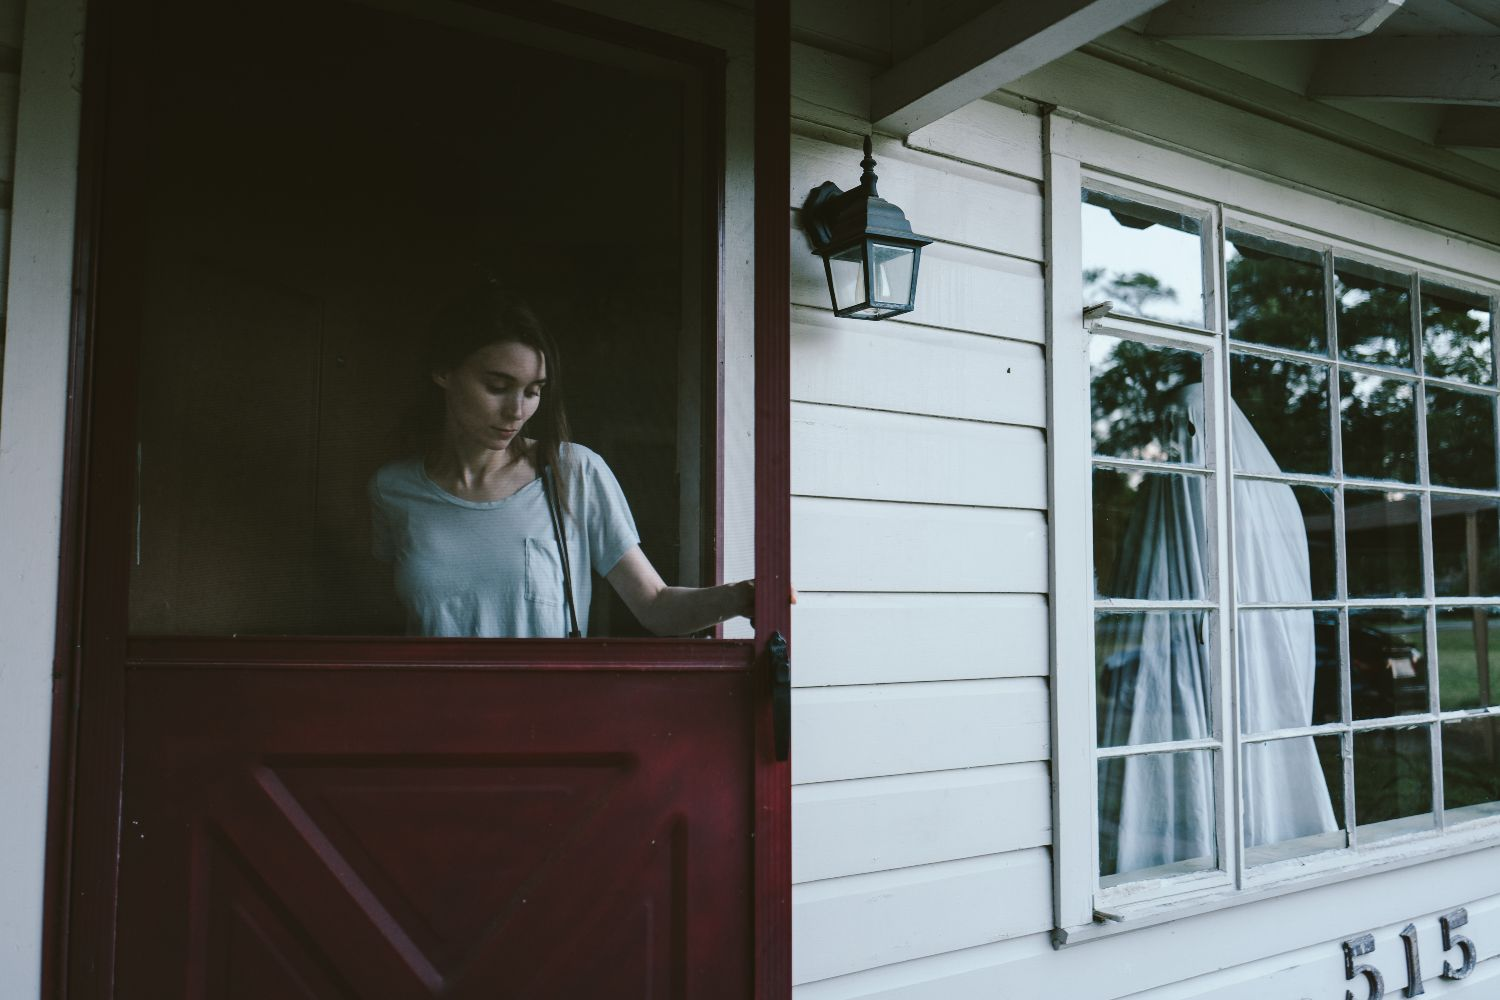 Rooney Mara and Casey Affleck in A GHOST STORY, photo credit – Bret Curry